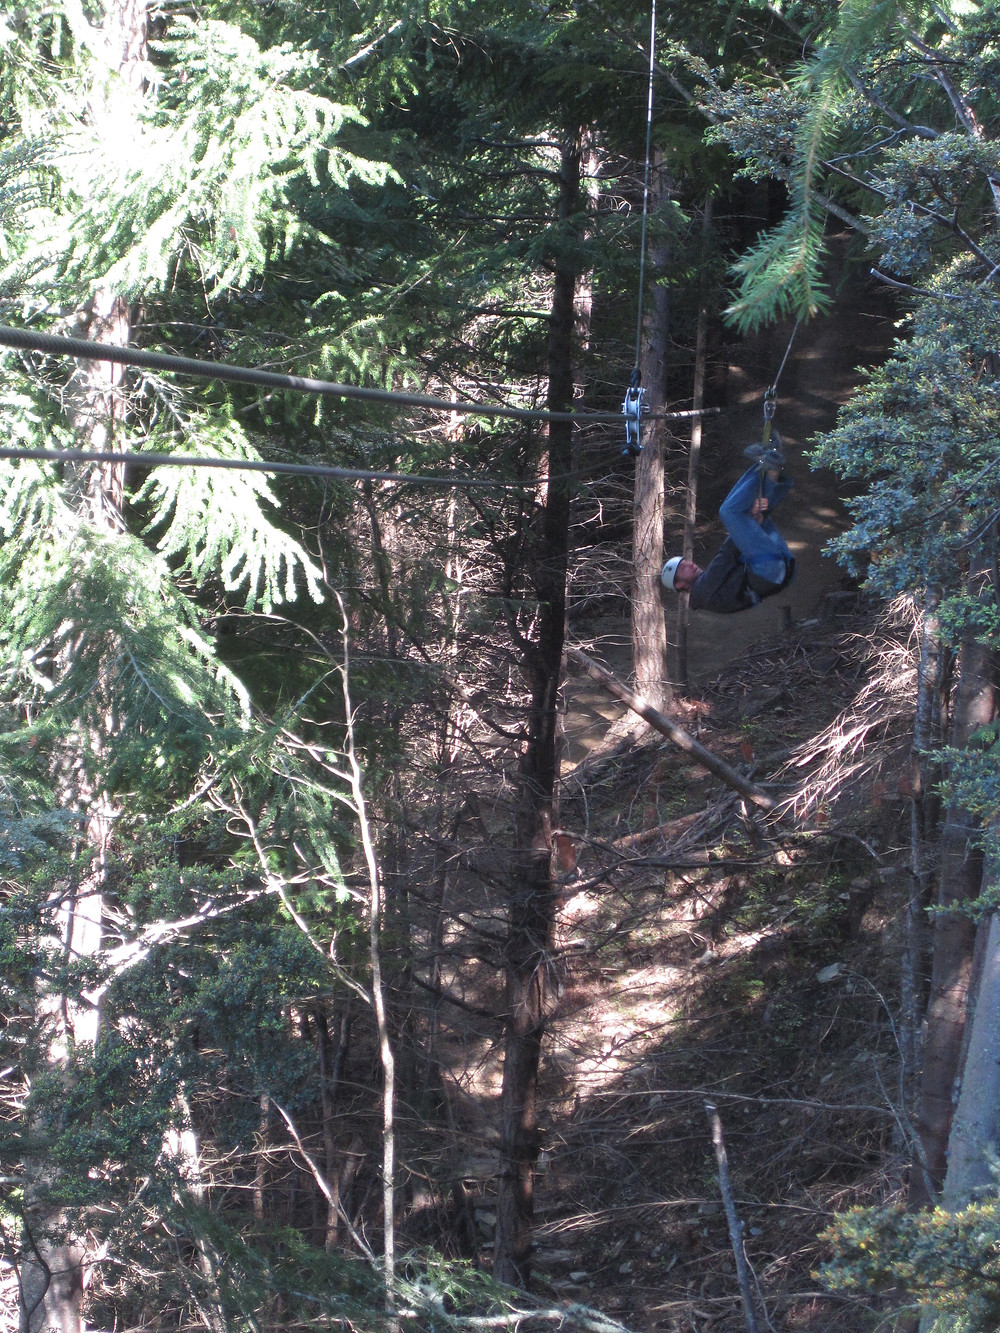 Zip line adrenaline fix in New Zealand